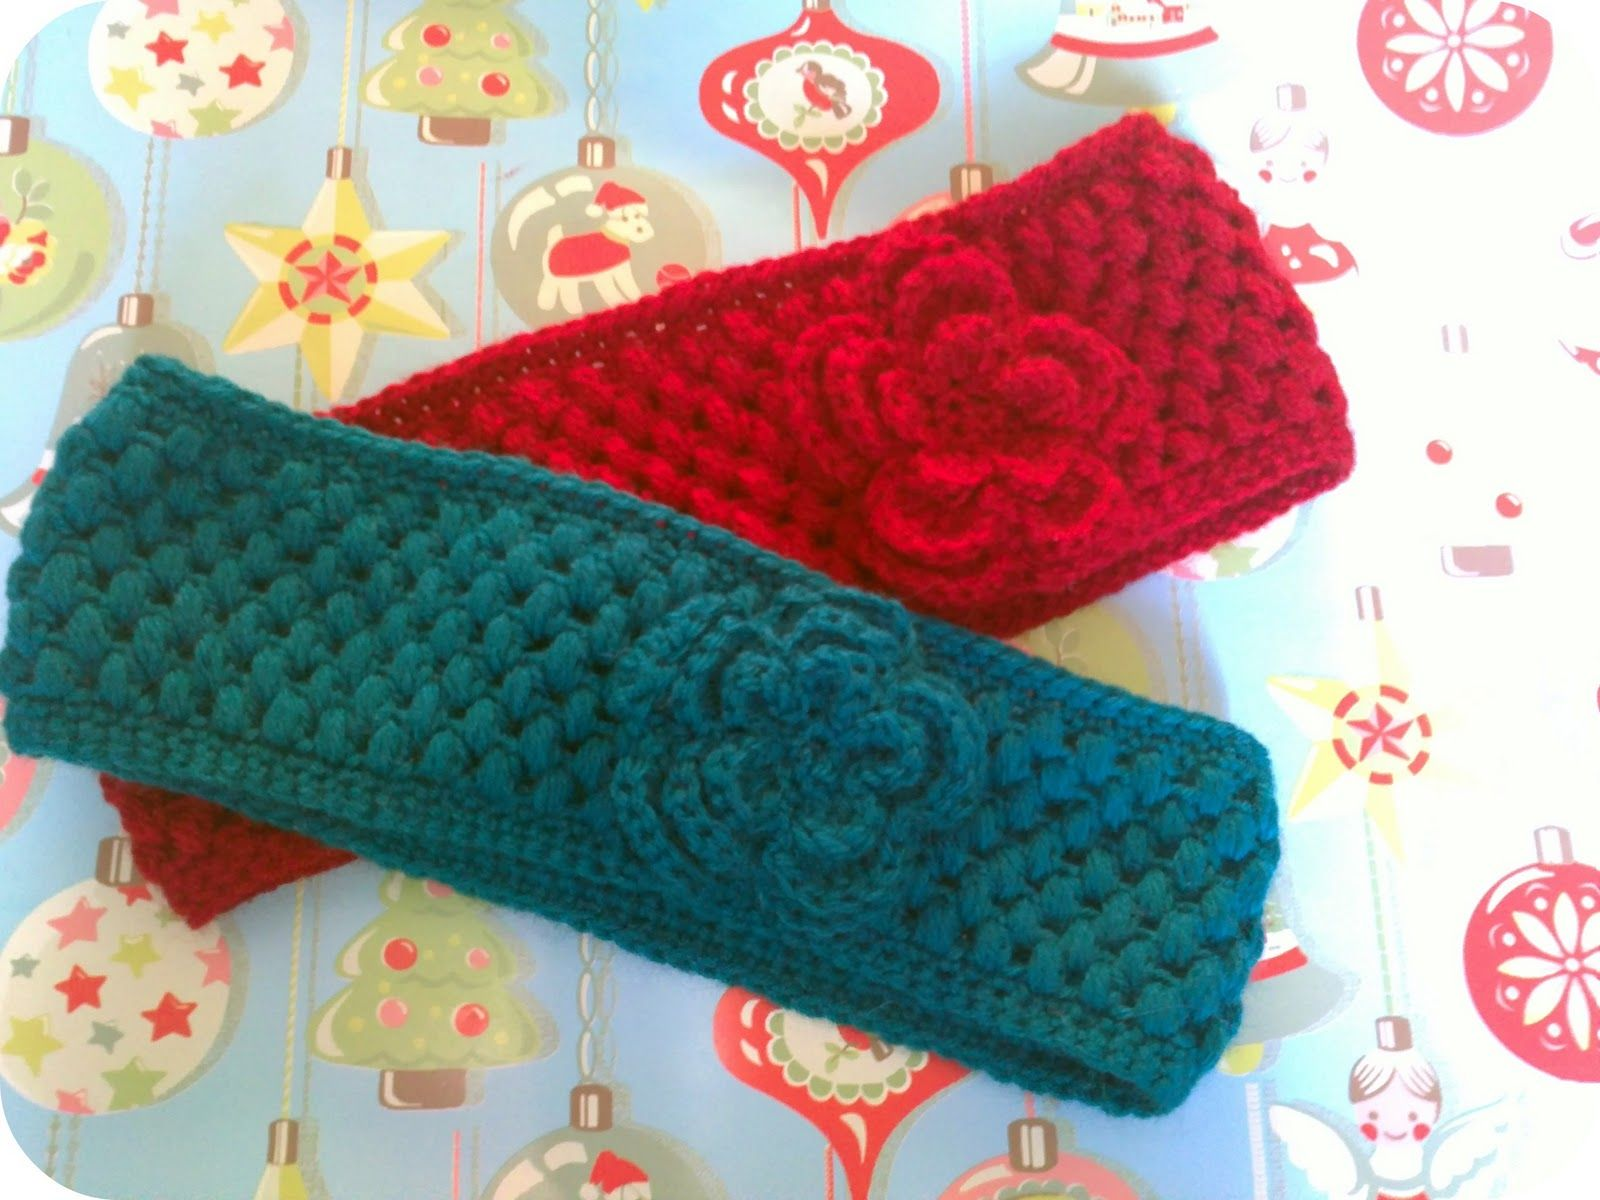 Free+Ear+Warmer+Pattern | Crochet how to make ear warmer headband ...